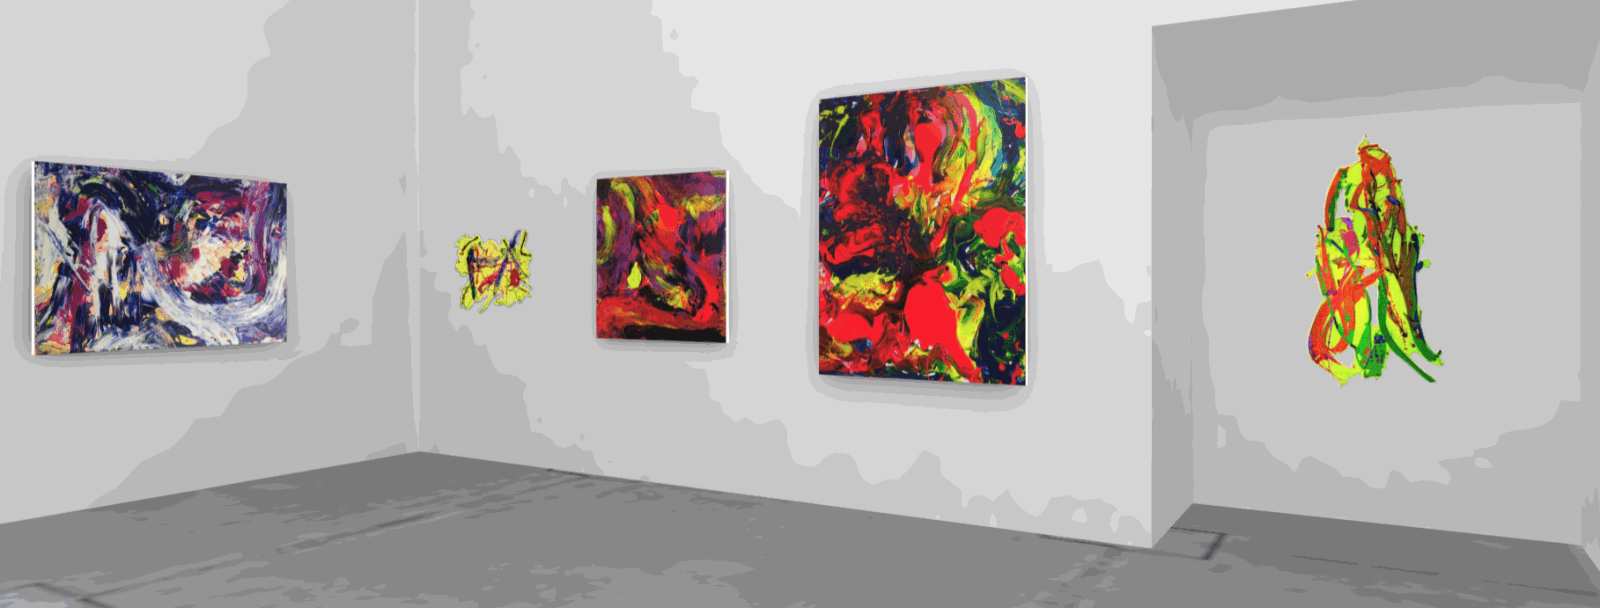 Dellamarie Parrilli: Up Close and Colorful Installation view